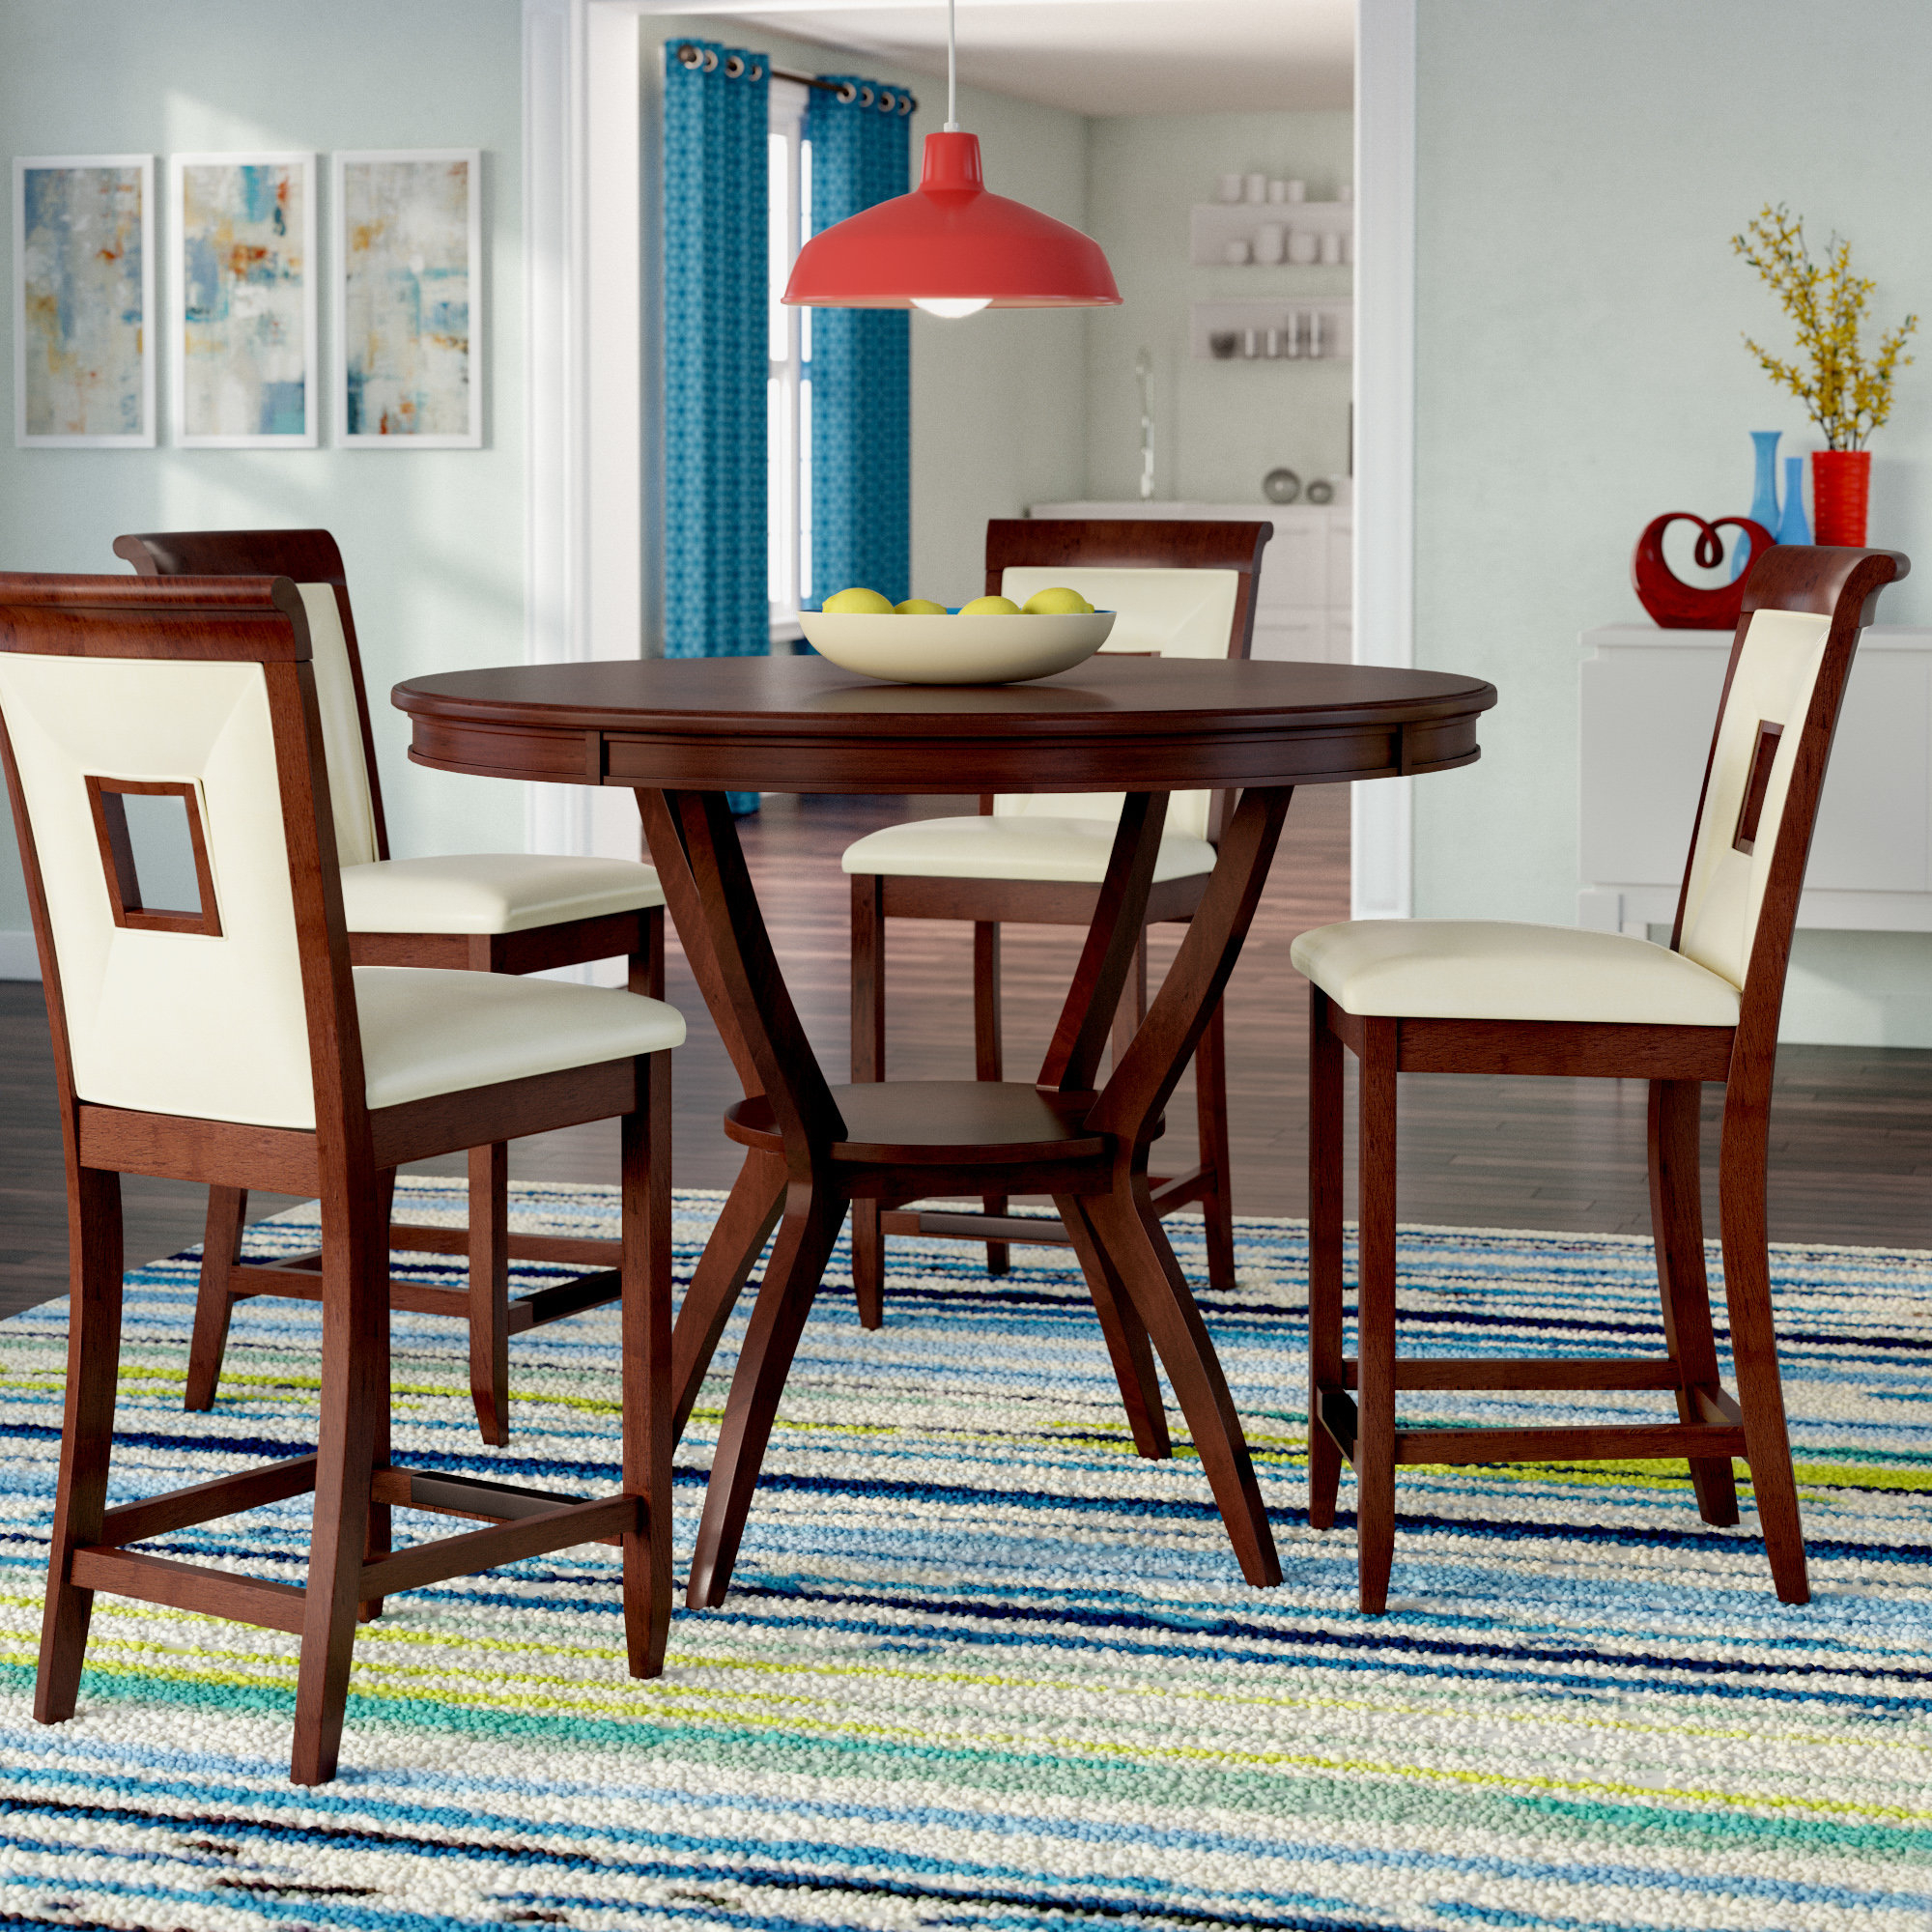 Well Liked Denzel 5 Piece Counter Height Breakfast Nook Dining Sets Inside Deherrera 5 Piece Counter Height Dining Set (View 10 of 20)